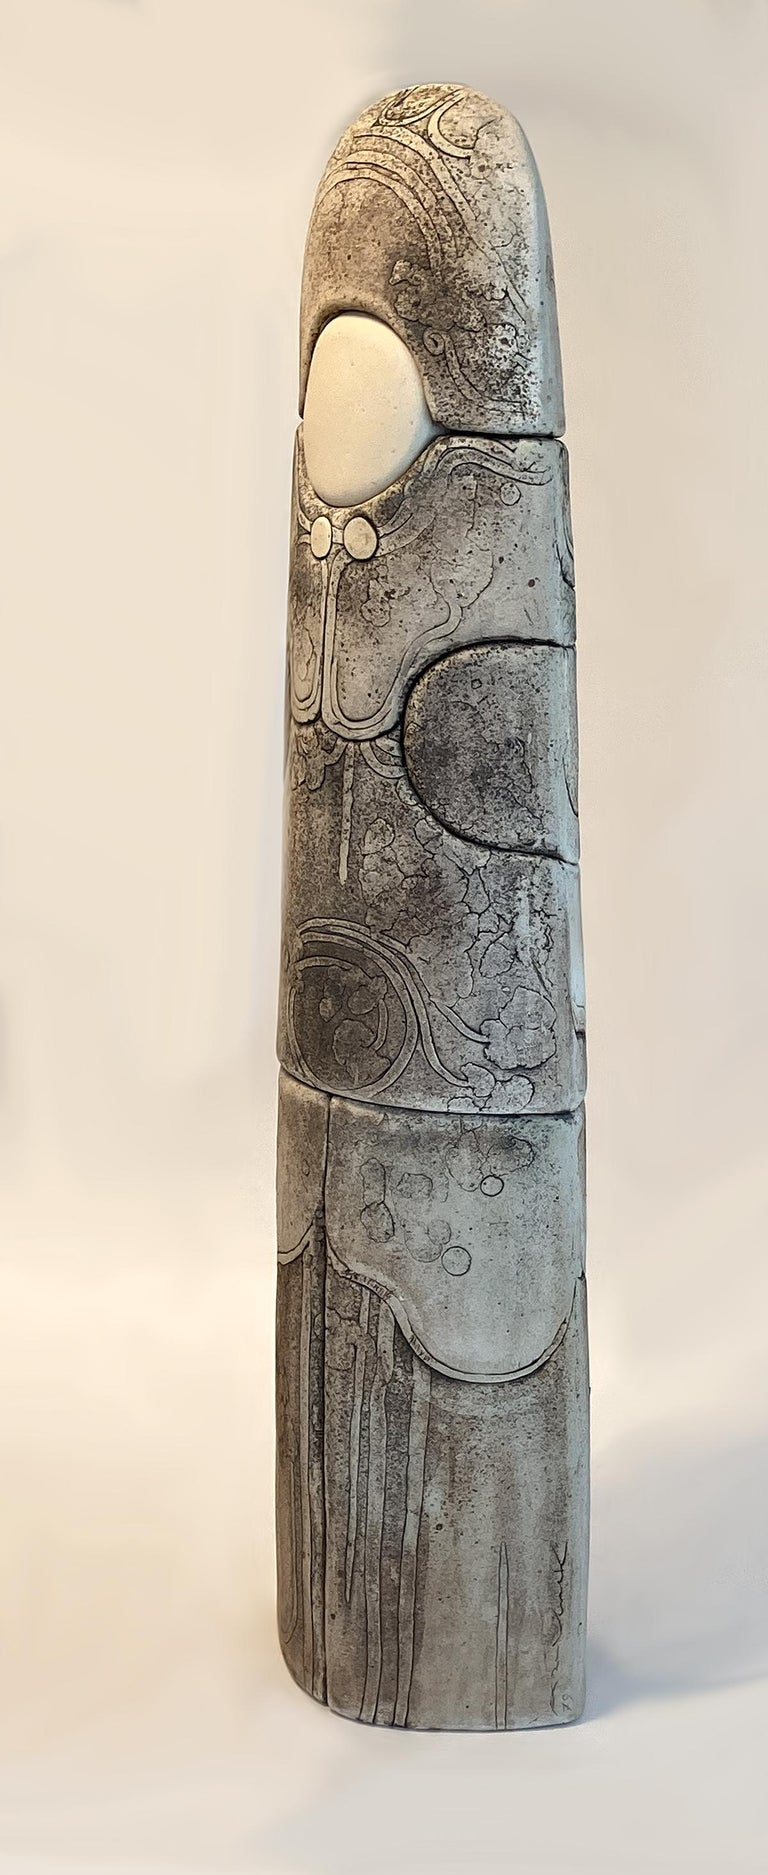 Monumental Ceramic Pottery Sculpture by Antoine de Vinck, France, 1970s. Proudly offered here is a Belgian ceramist Antoine de Vinck (1924-1992) three-piece, wood fired ceramic and sandstone totem, carved with deep relief of assembled, glazed clay